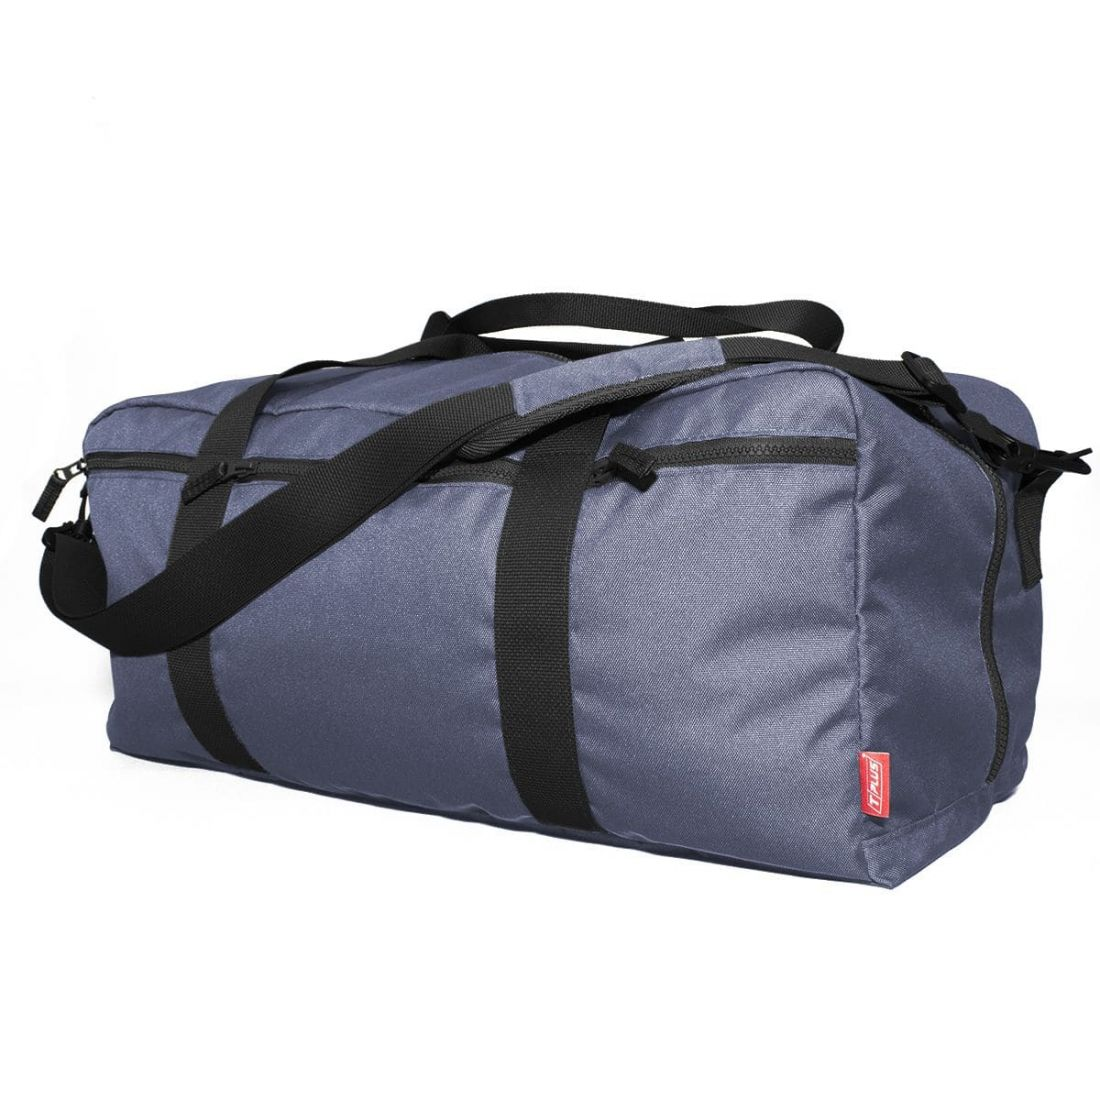 "Сумка ""Duffle Bag"" 530х270х270 мм (оксфорд 600, синий), Tplus"